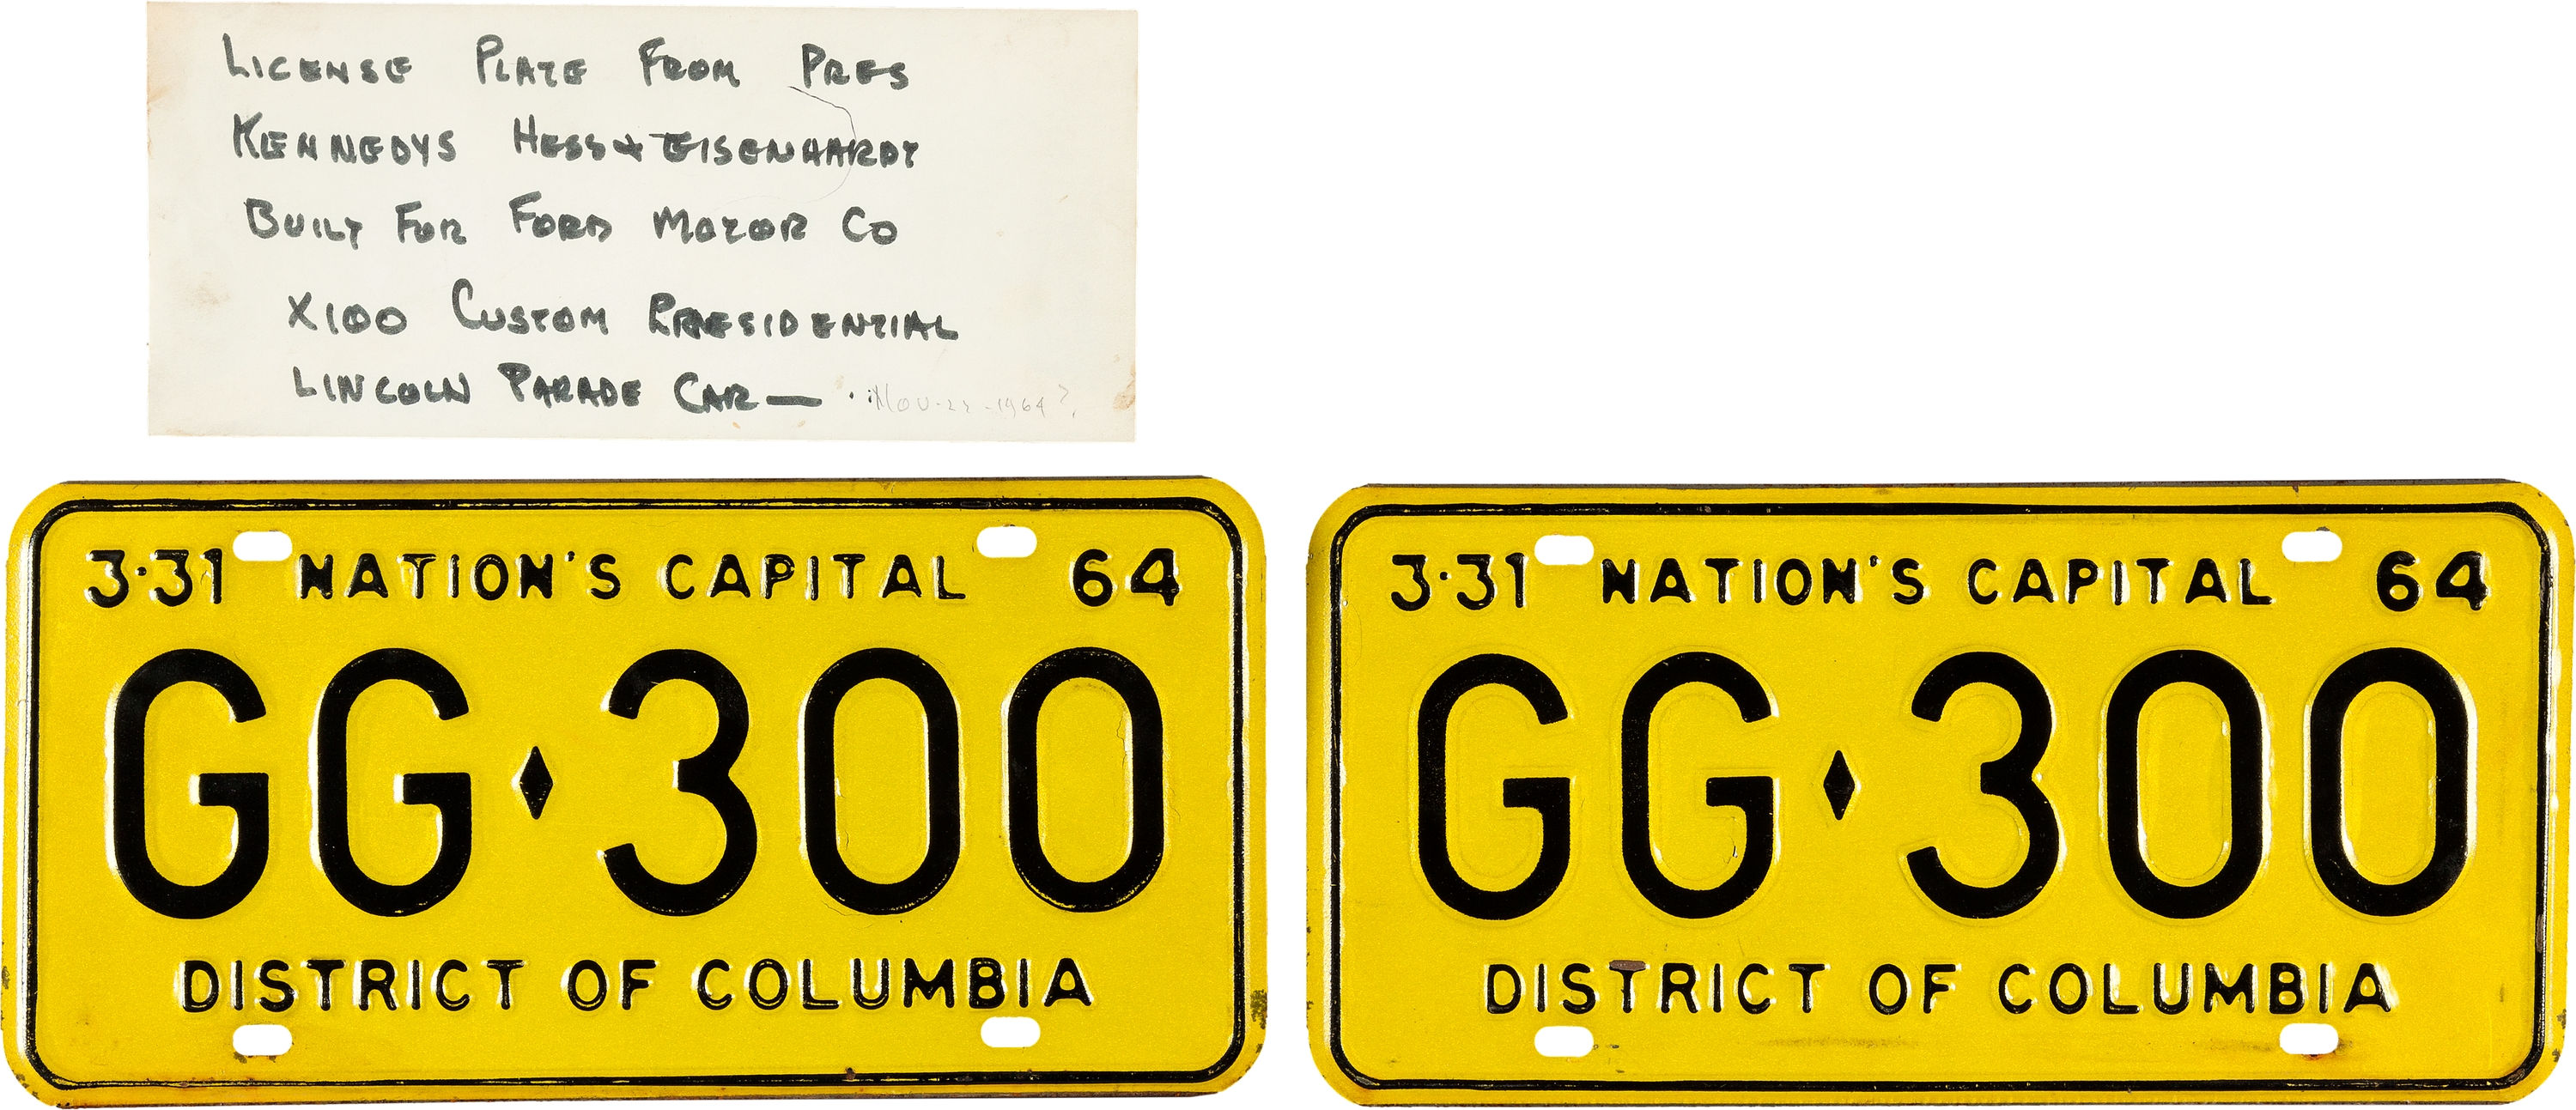 The license plates that were on the limousine carrying President John F. Kennedy when he was assassinated in Dallas on Nov. 22, 1963, are seen in this undated photo. The plates, which were discarded when the vehicle was sent for upgrades, are going up for auction. | AP